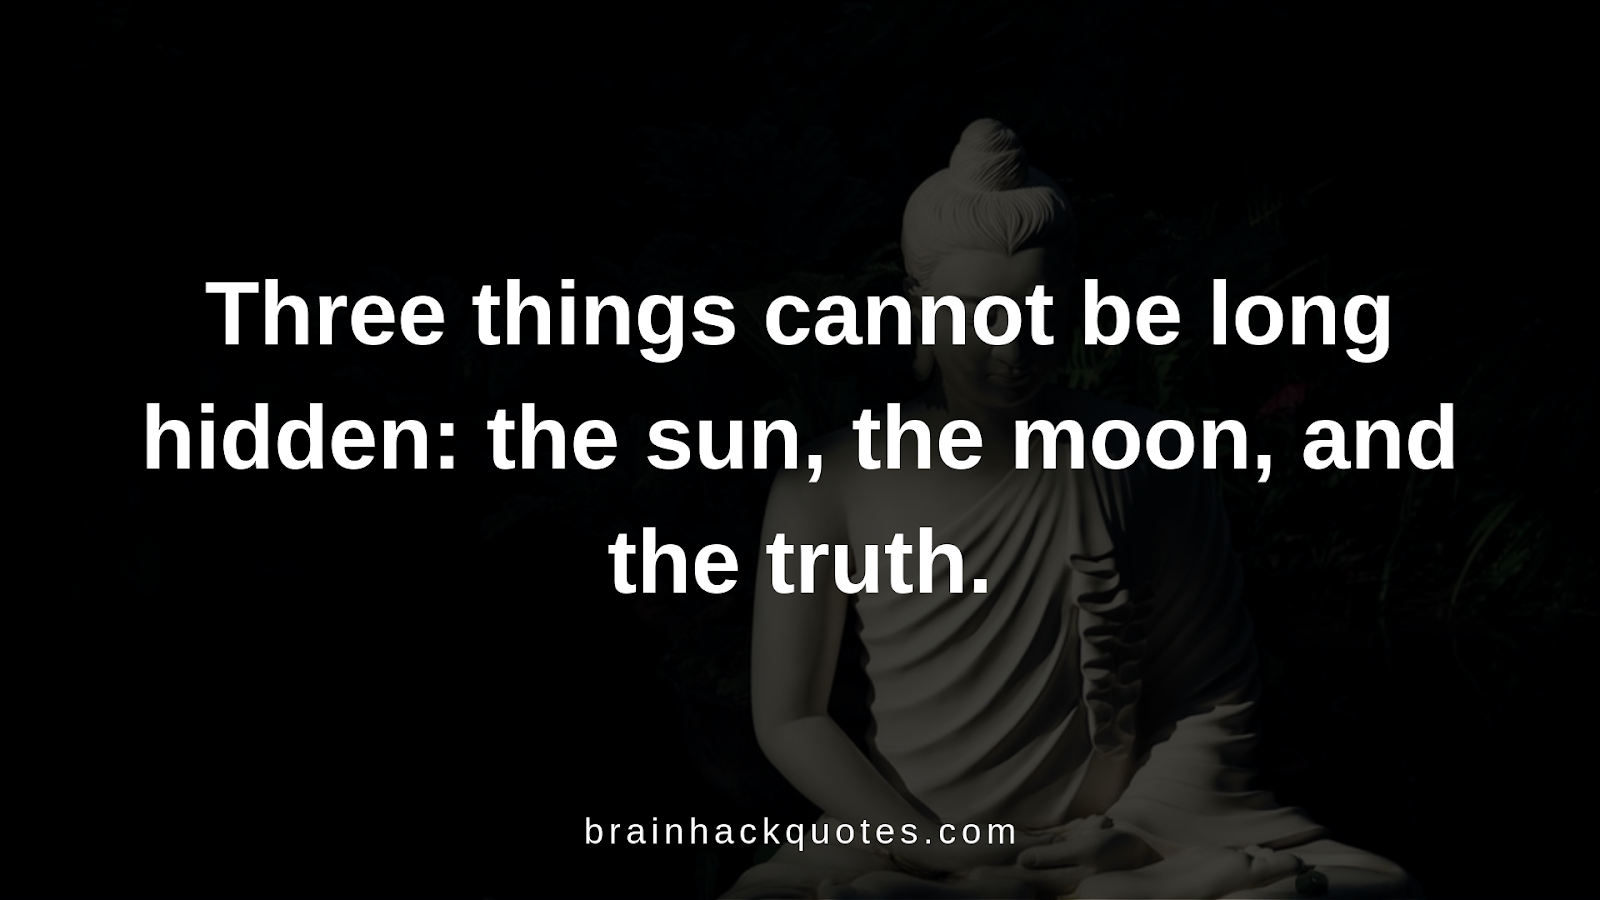 Quotes and Inspirational Lines of Buddha on Life ...